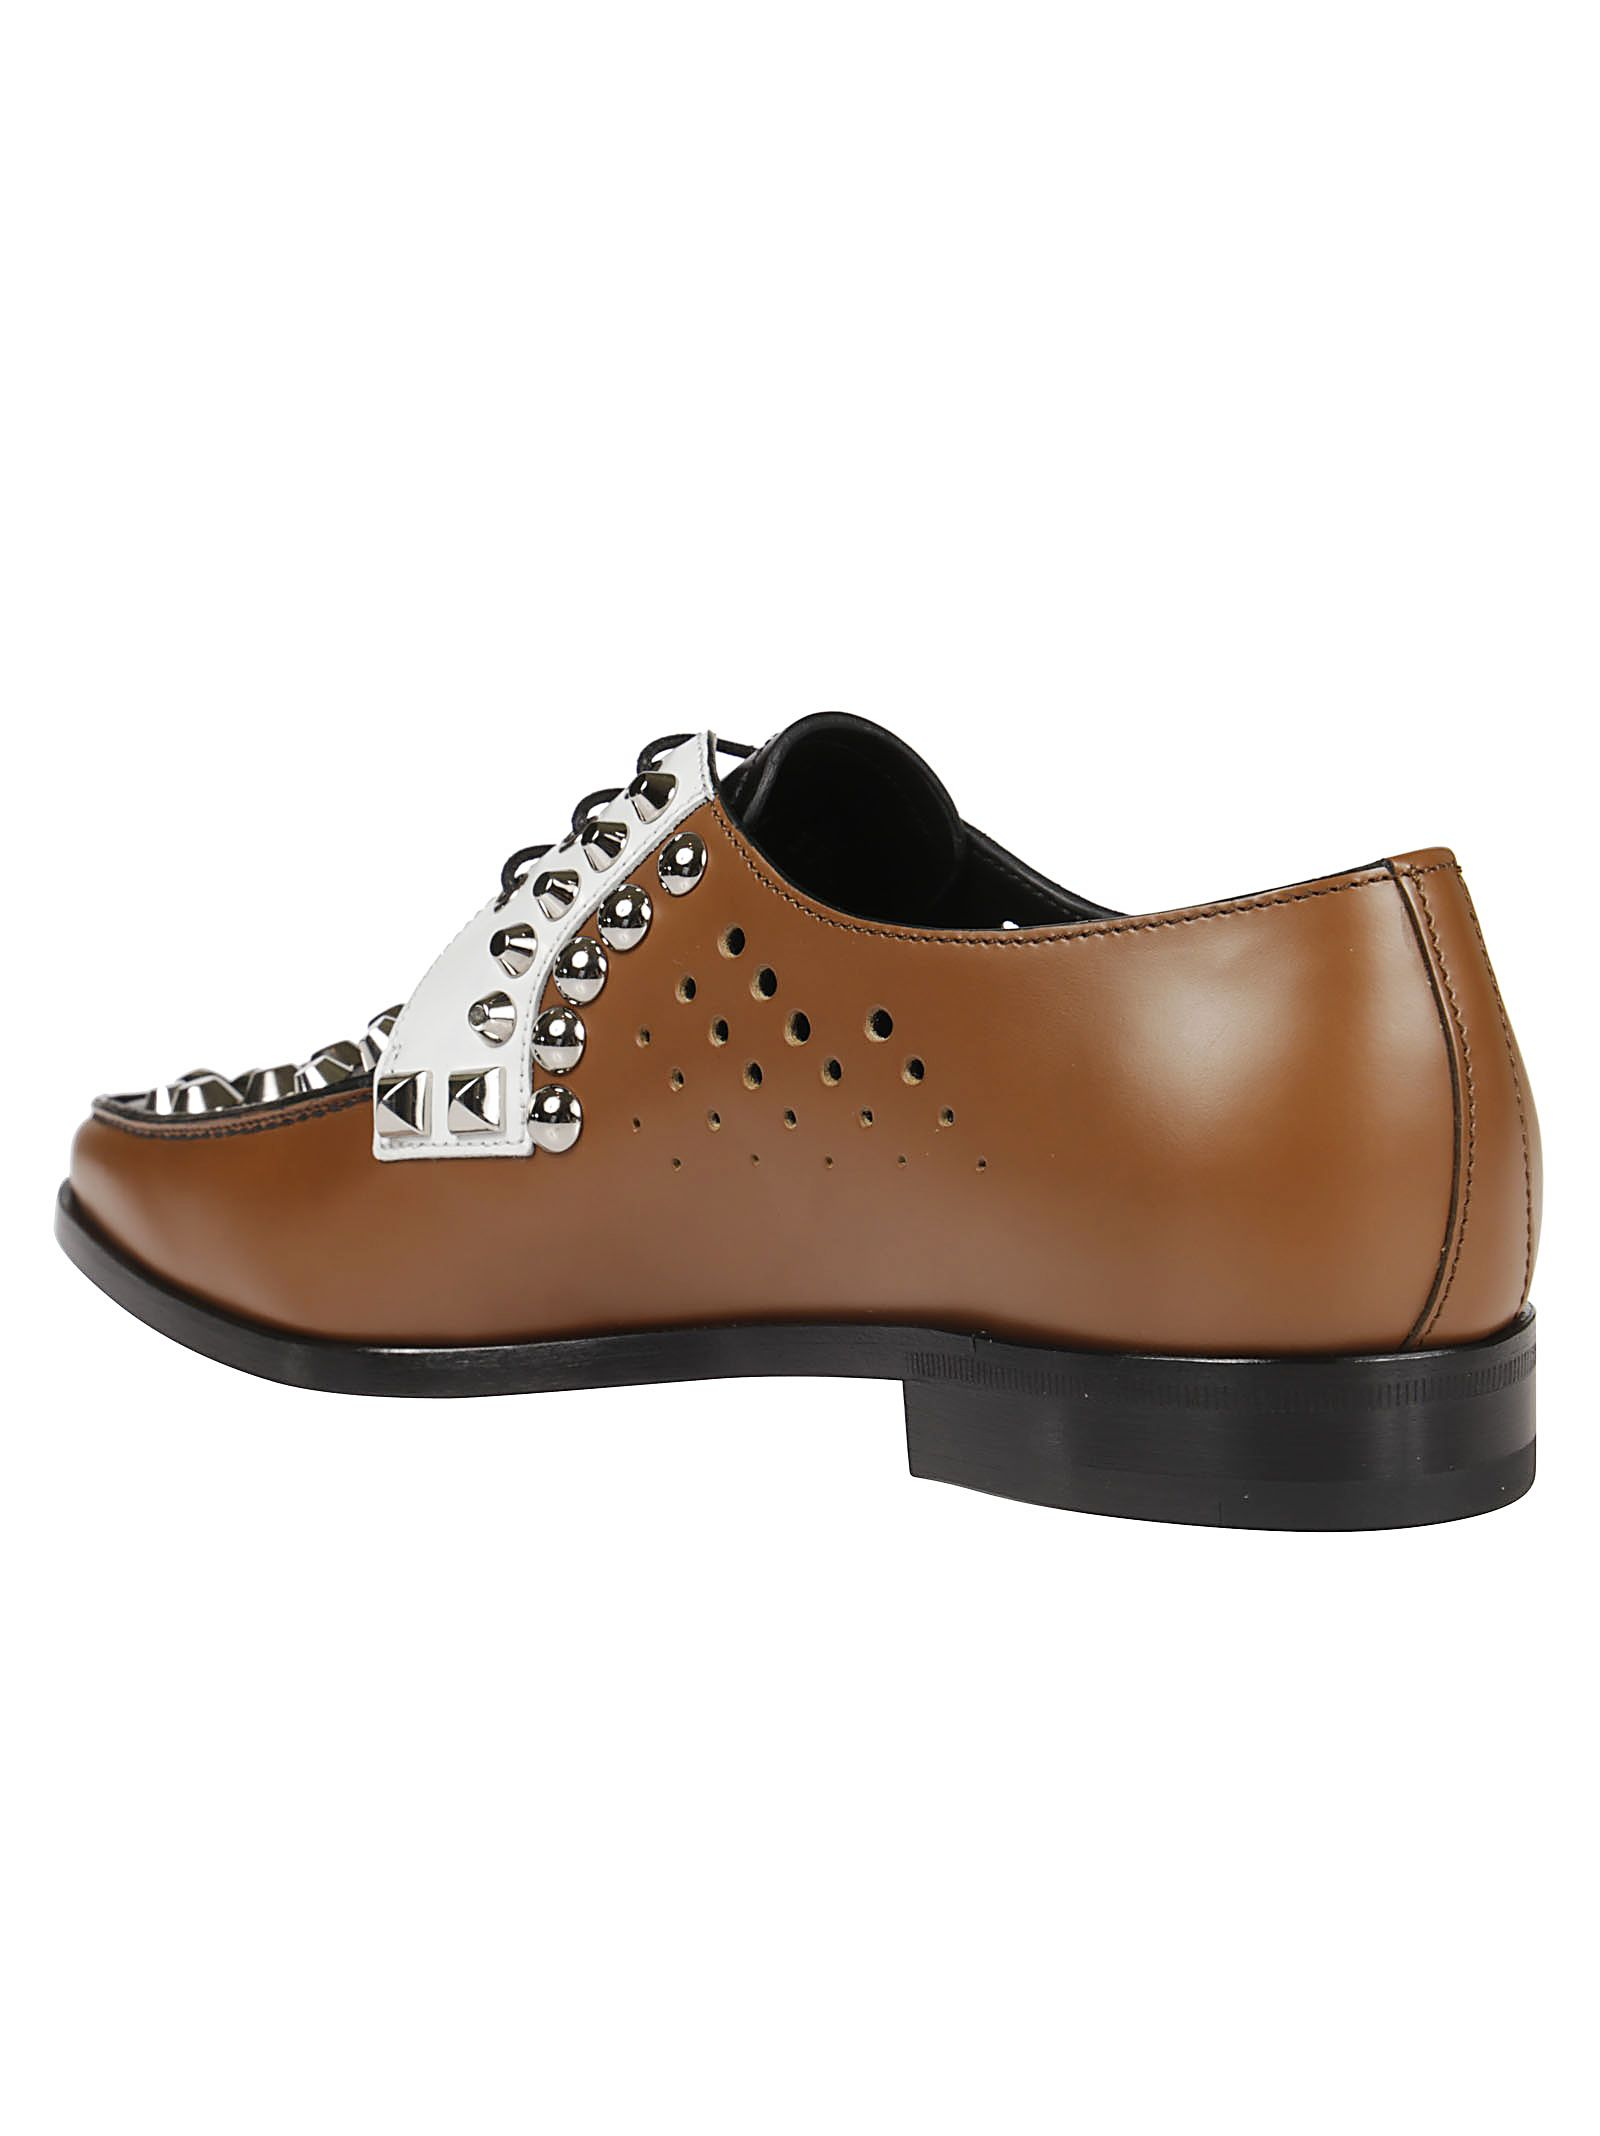 Prada Studded oxford shoes Footlocker Pictures For Sale Sale Low Shipping Fee 2fSqTT